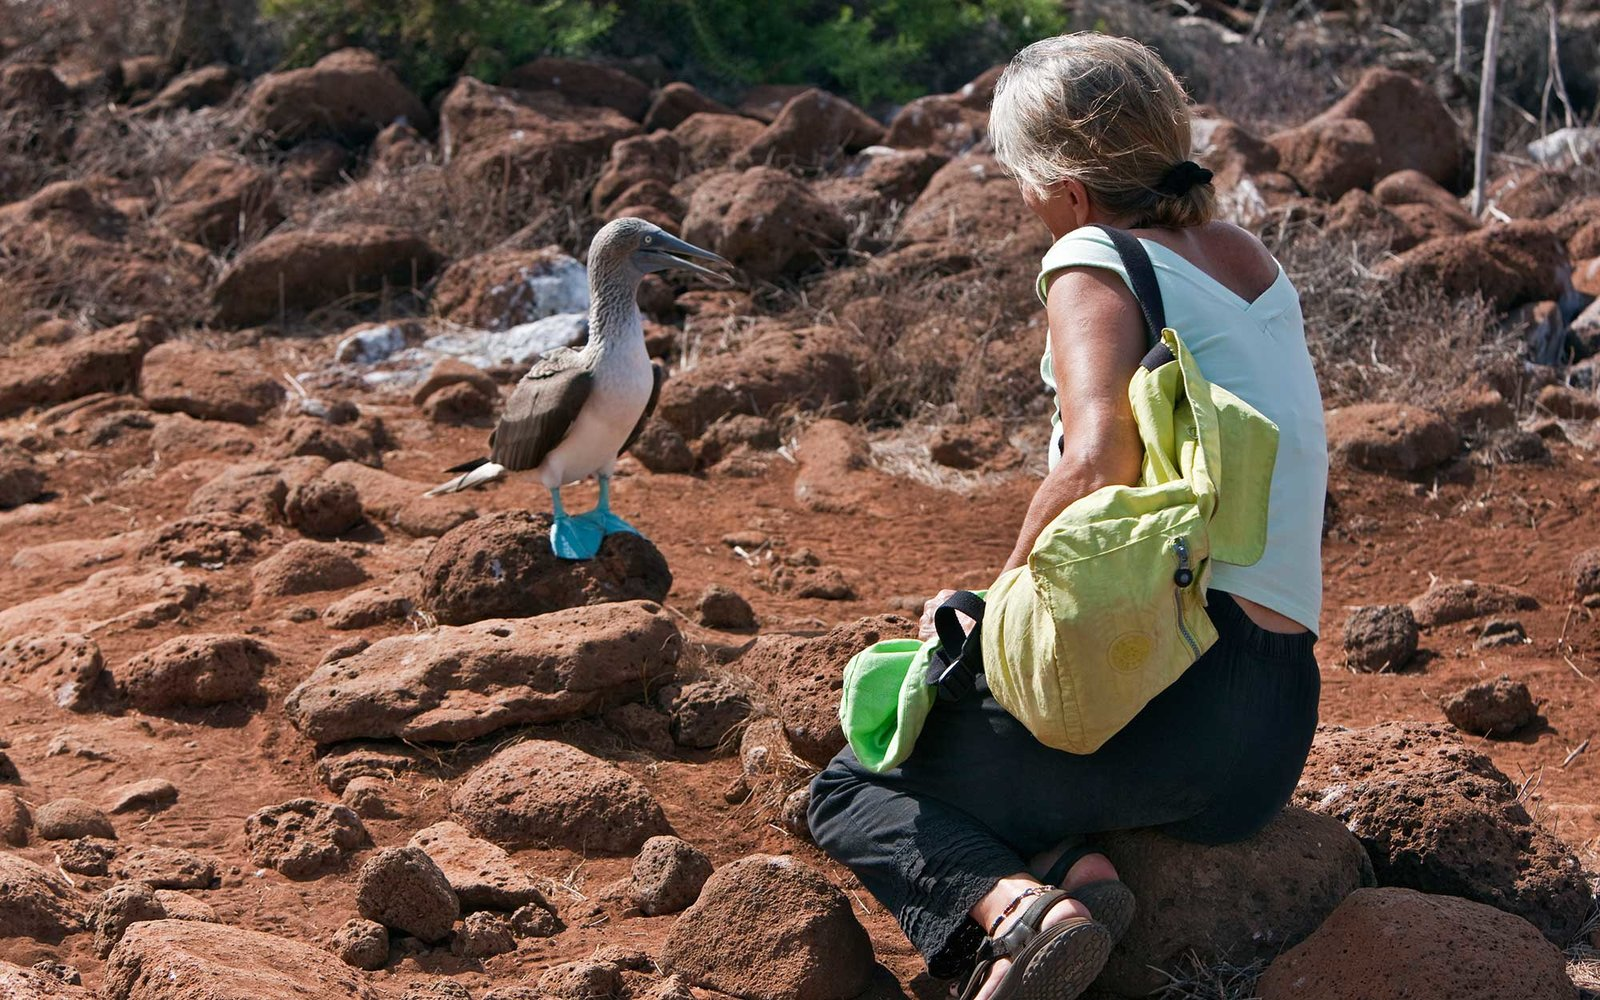 Blue-footed boobies in the Galapagos Islands, Ecuador